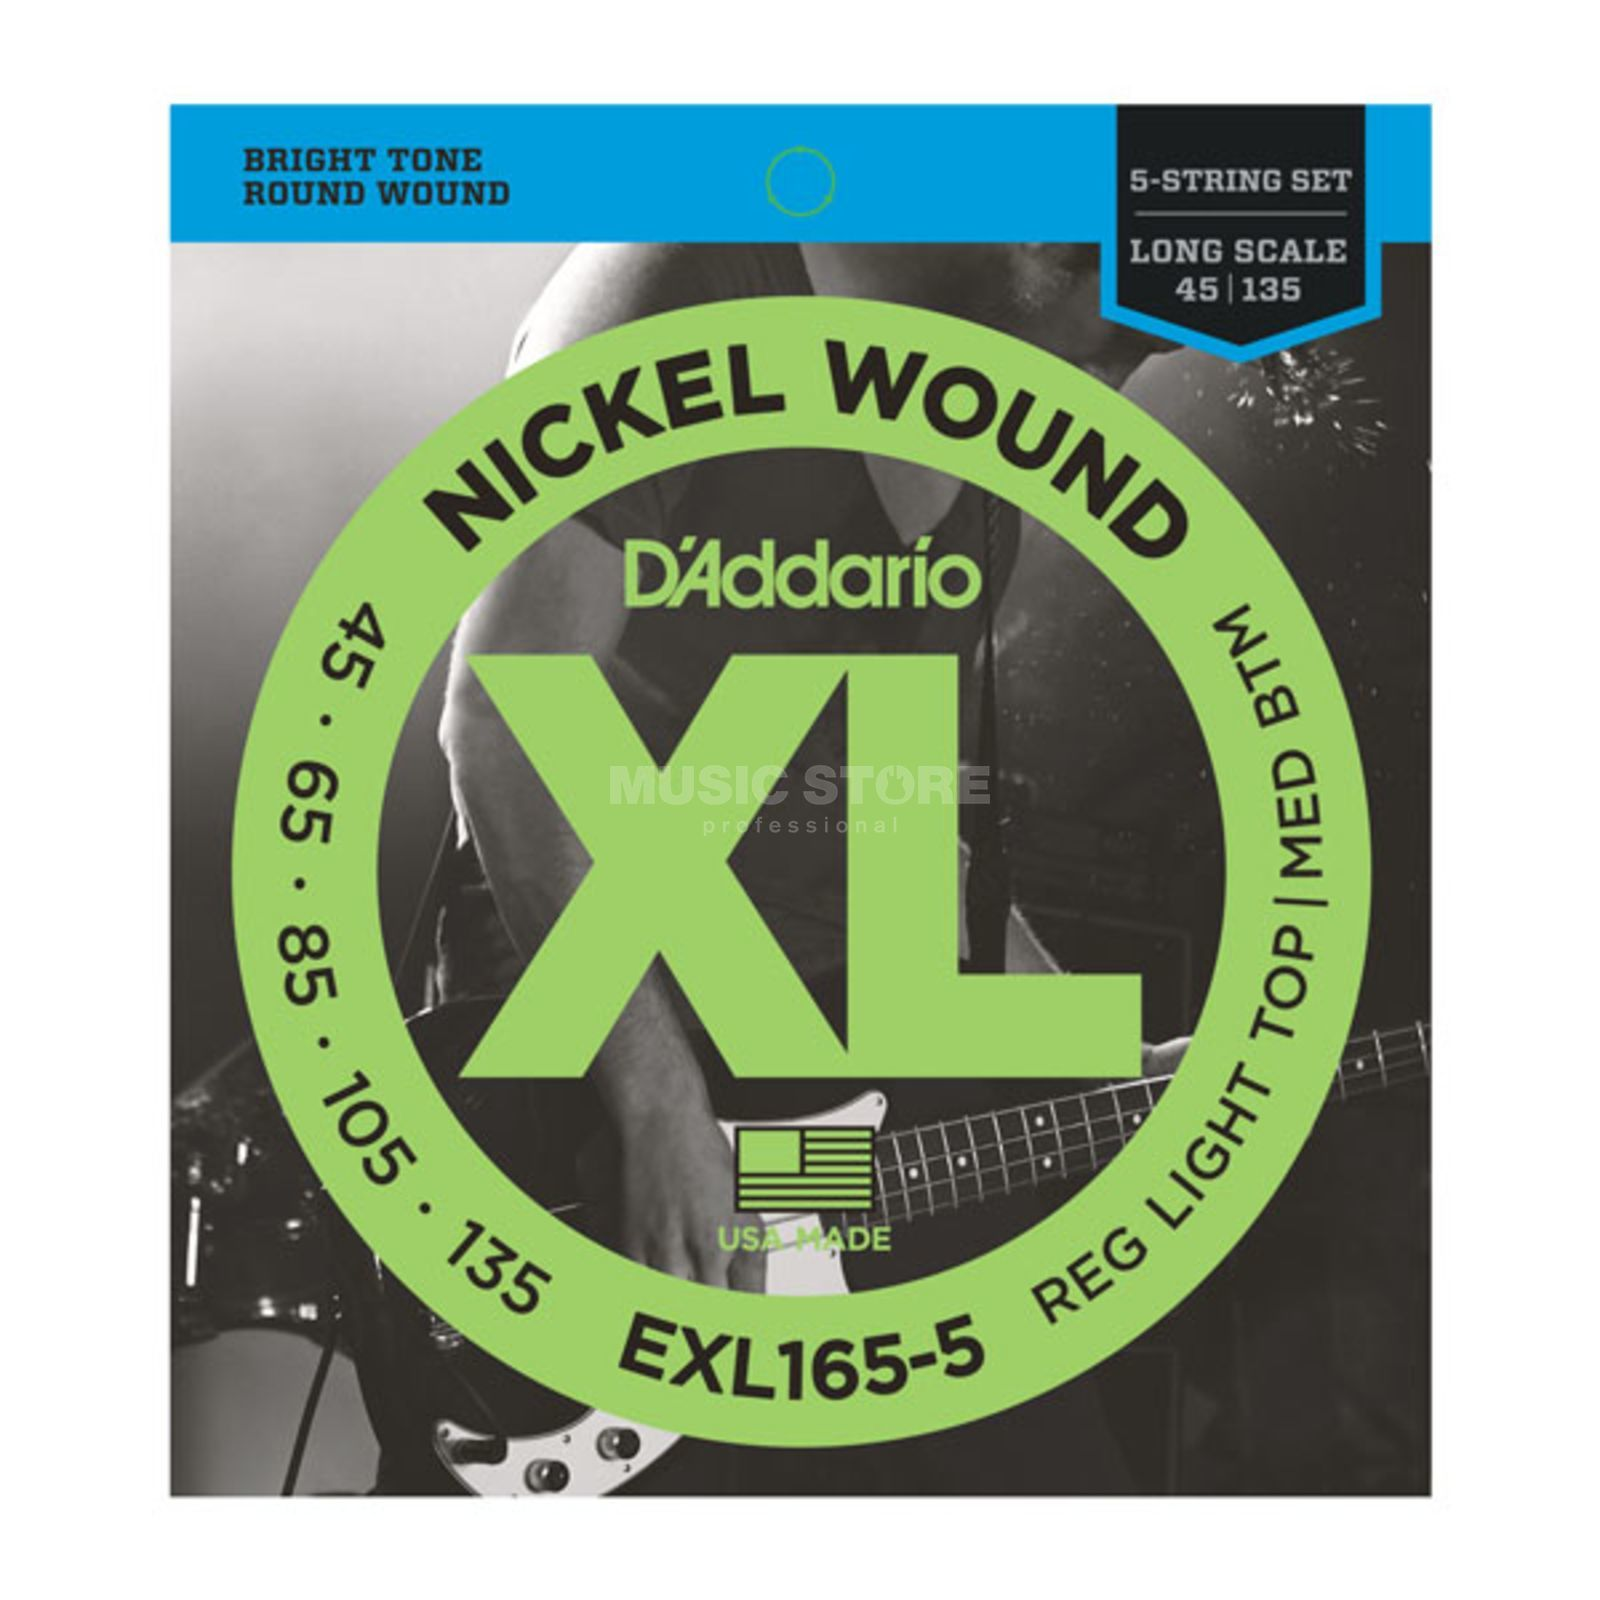 D'Addario Bass Strings XL Nickel 45-135 45-65-85-105-135, EXL165-5 Zdjęcie produktu